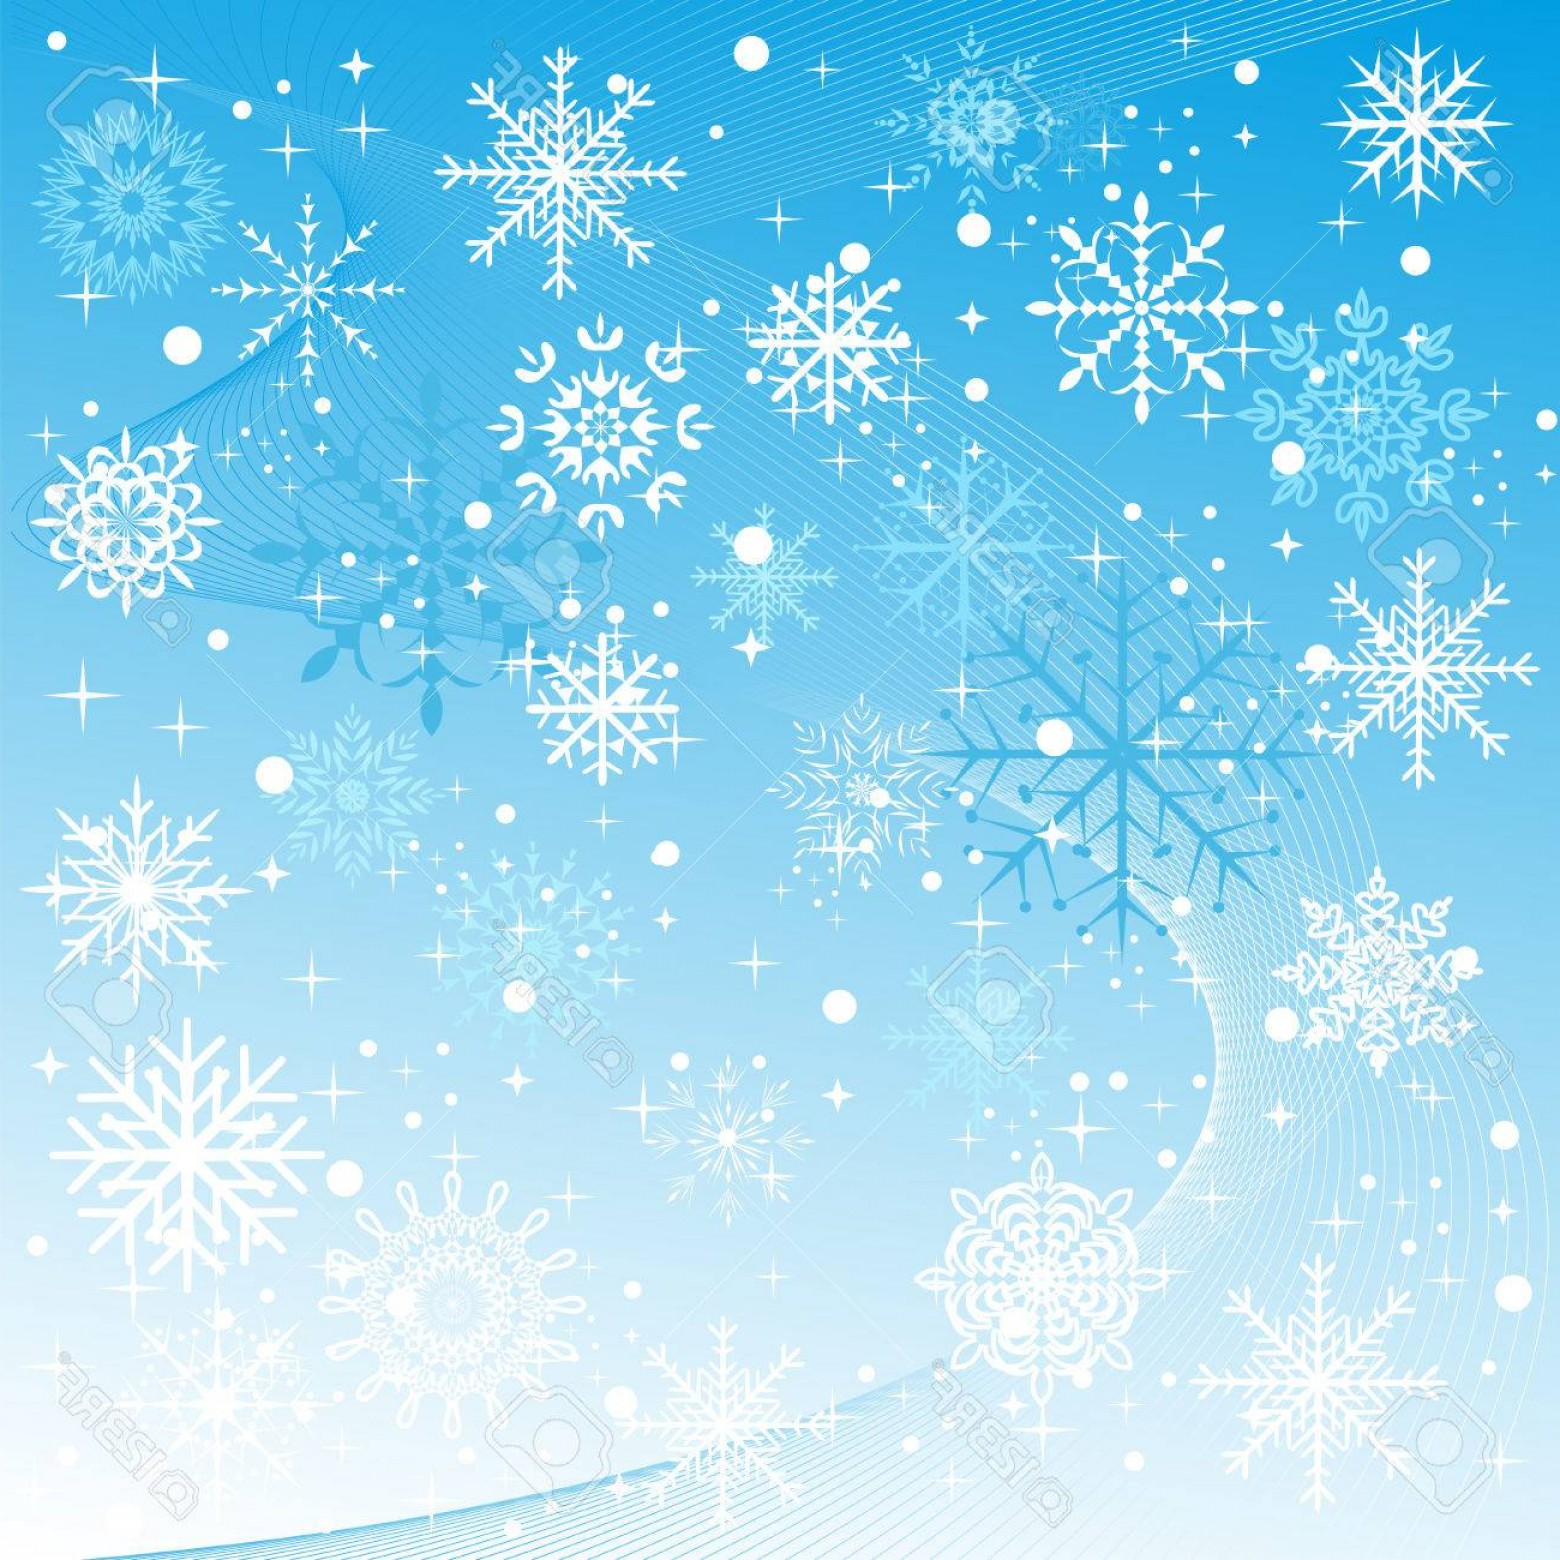 Snow Falling Vector Free: Photoa Winter Background With Snowflakes Falling Vector